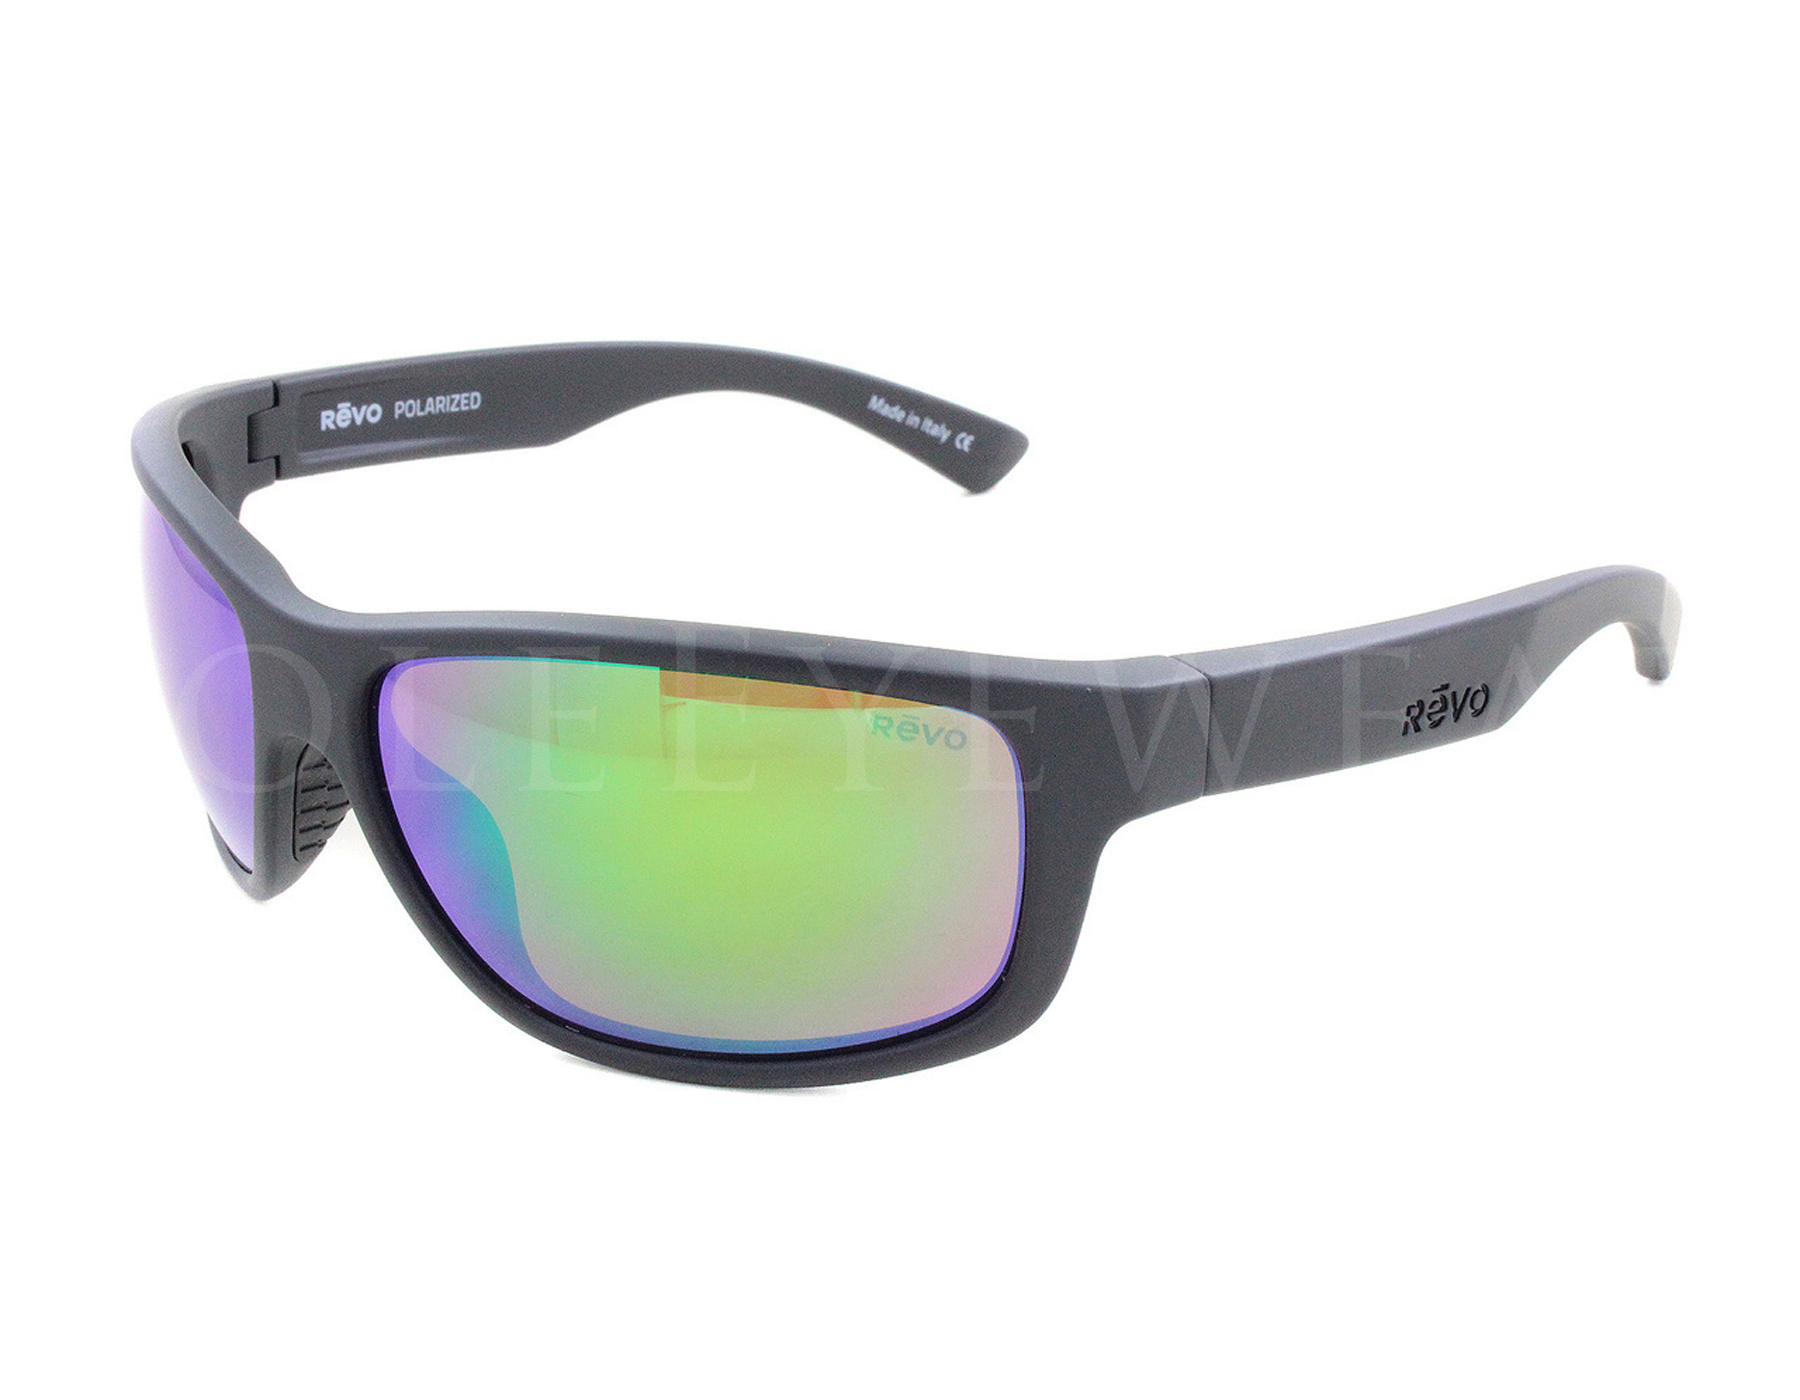 53a571ccb8 Details about NEW Revo 1006-01 GN Baseliner Matte Black Green Water Polarized  61mm Sunglasses